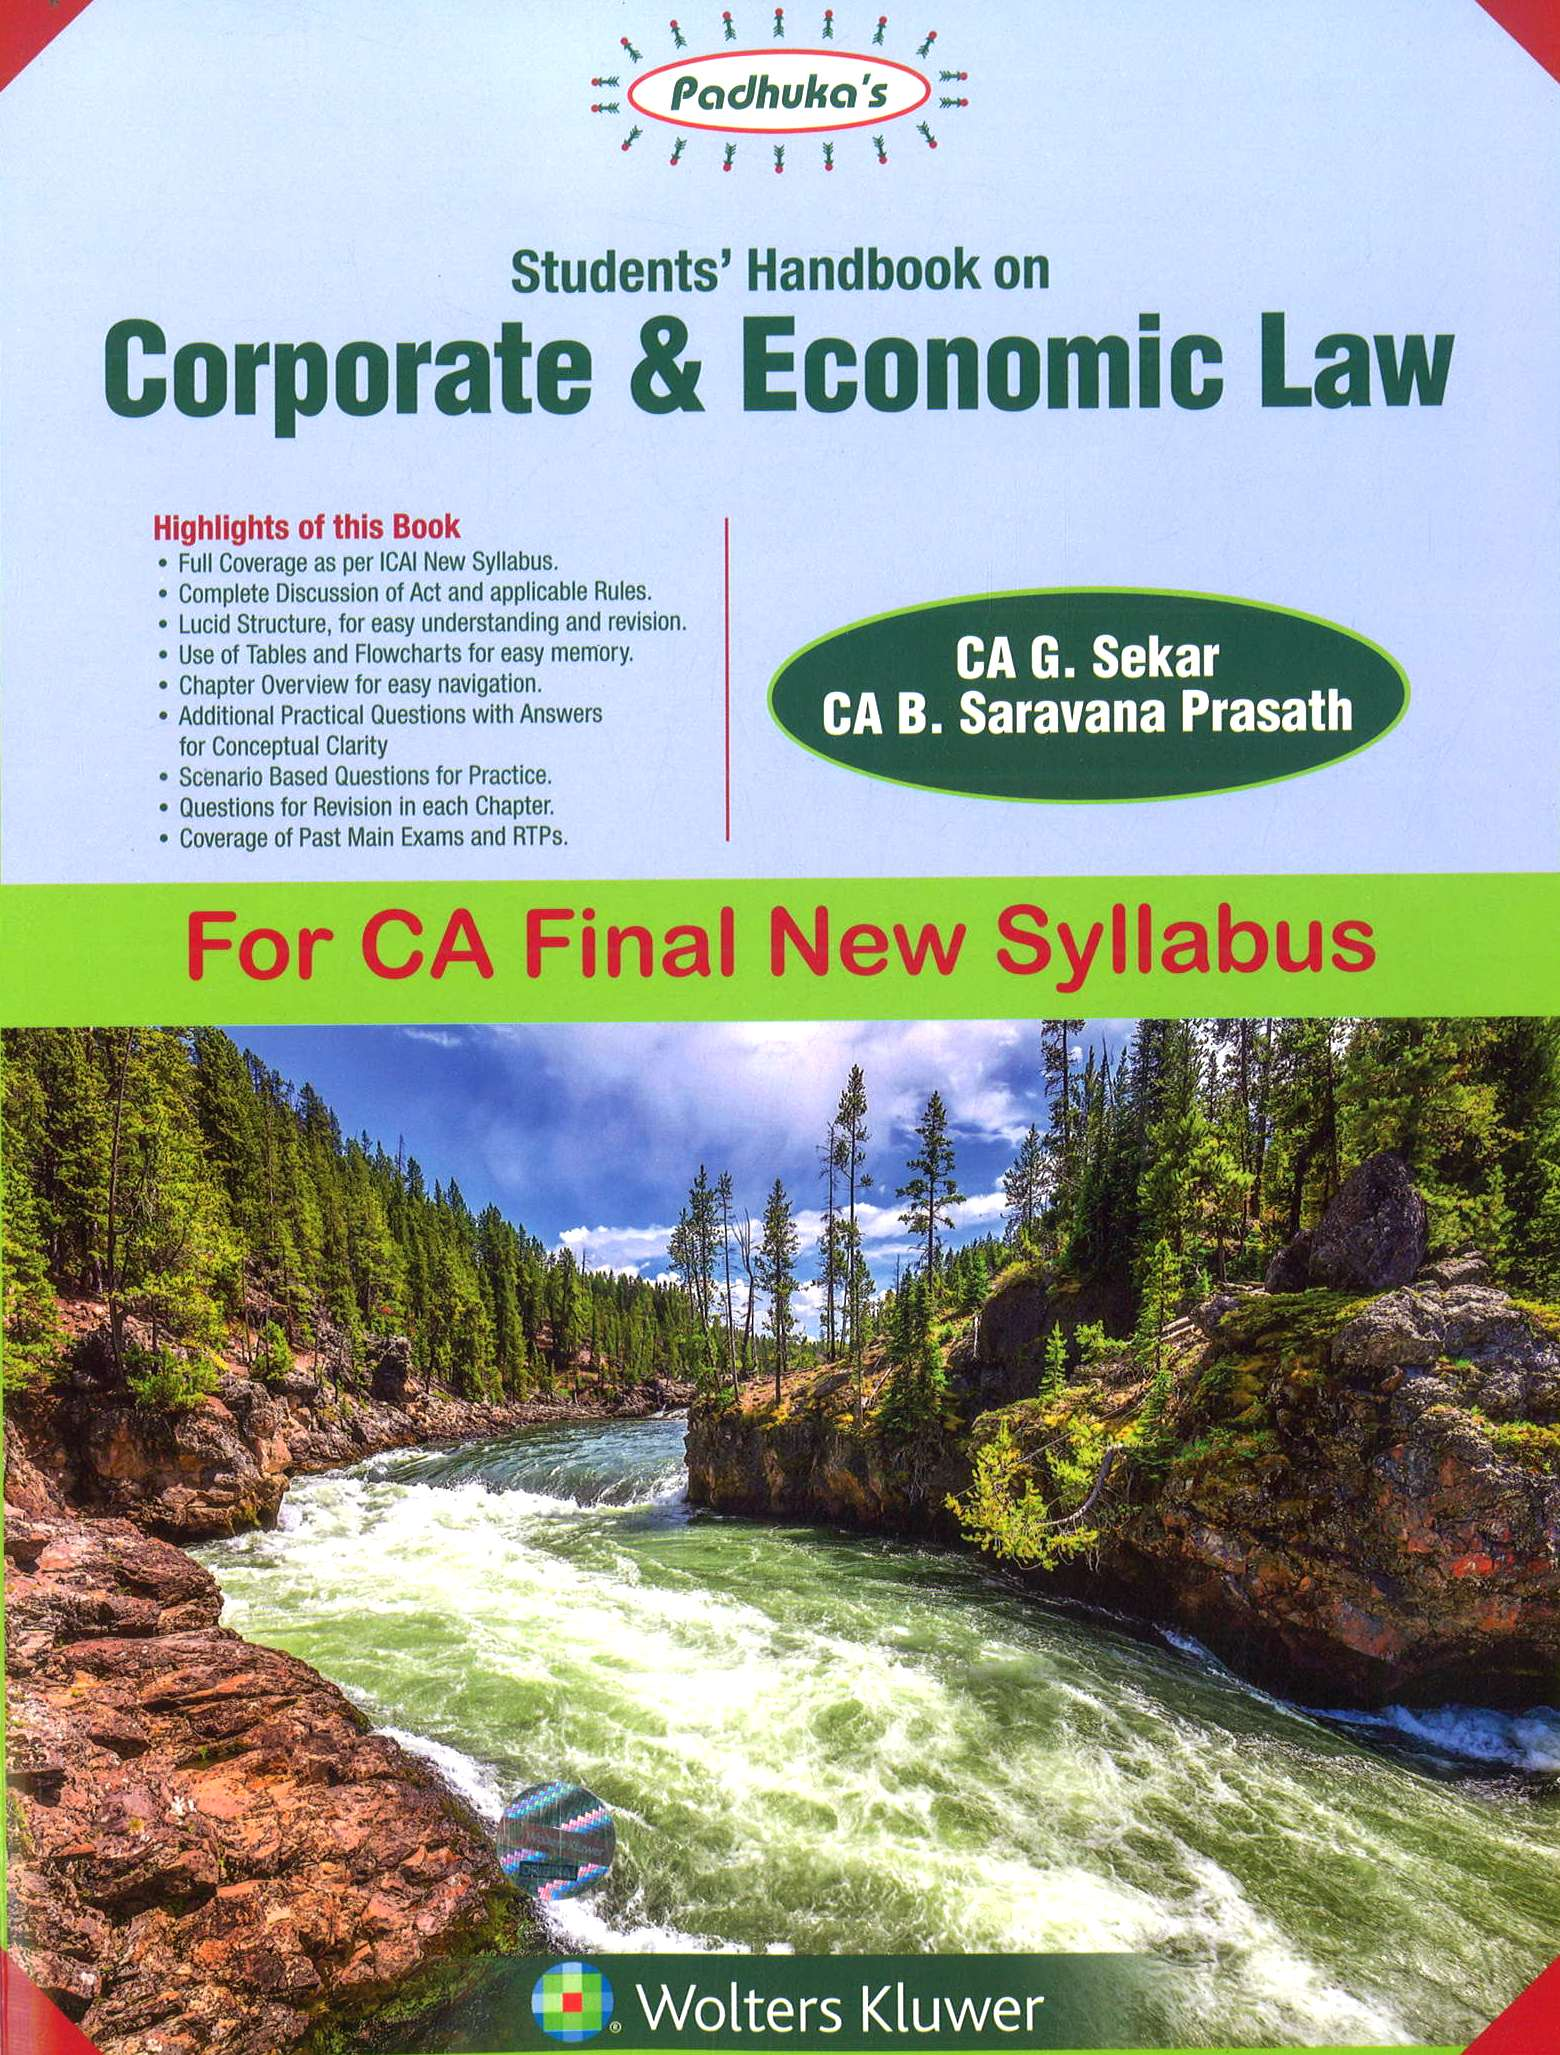 CCH Padhuka's Students' Handbook on Corporate & Economic Law For CA Final New Syllabus by CA G. Sekar CA B. Saravana Prasath Applicable for May 2018 Exam